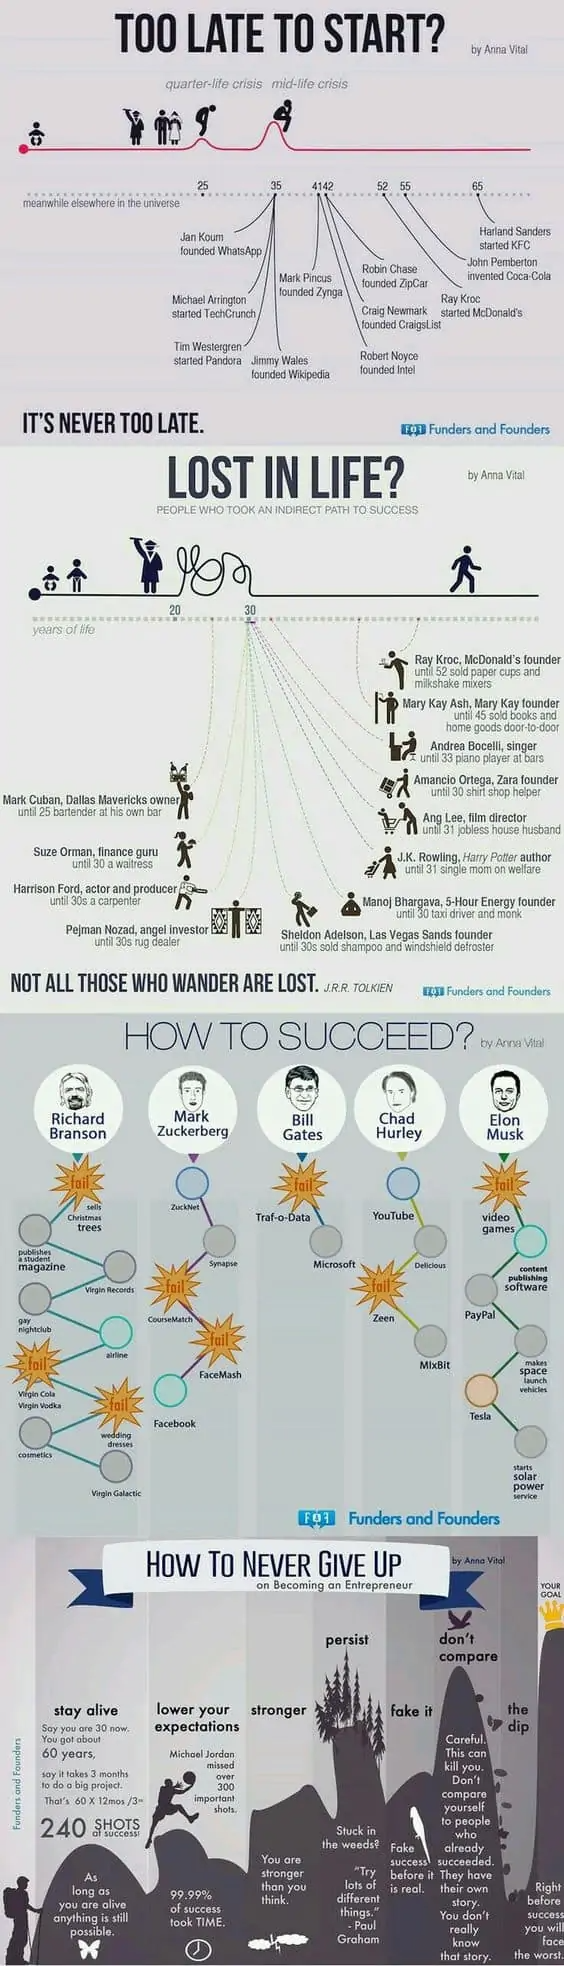 It's Never Too Late To Follow Your Passion   Daily Infographic